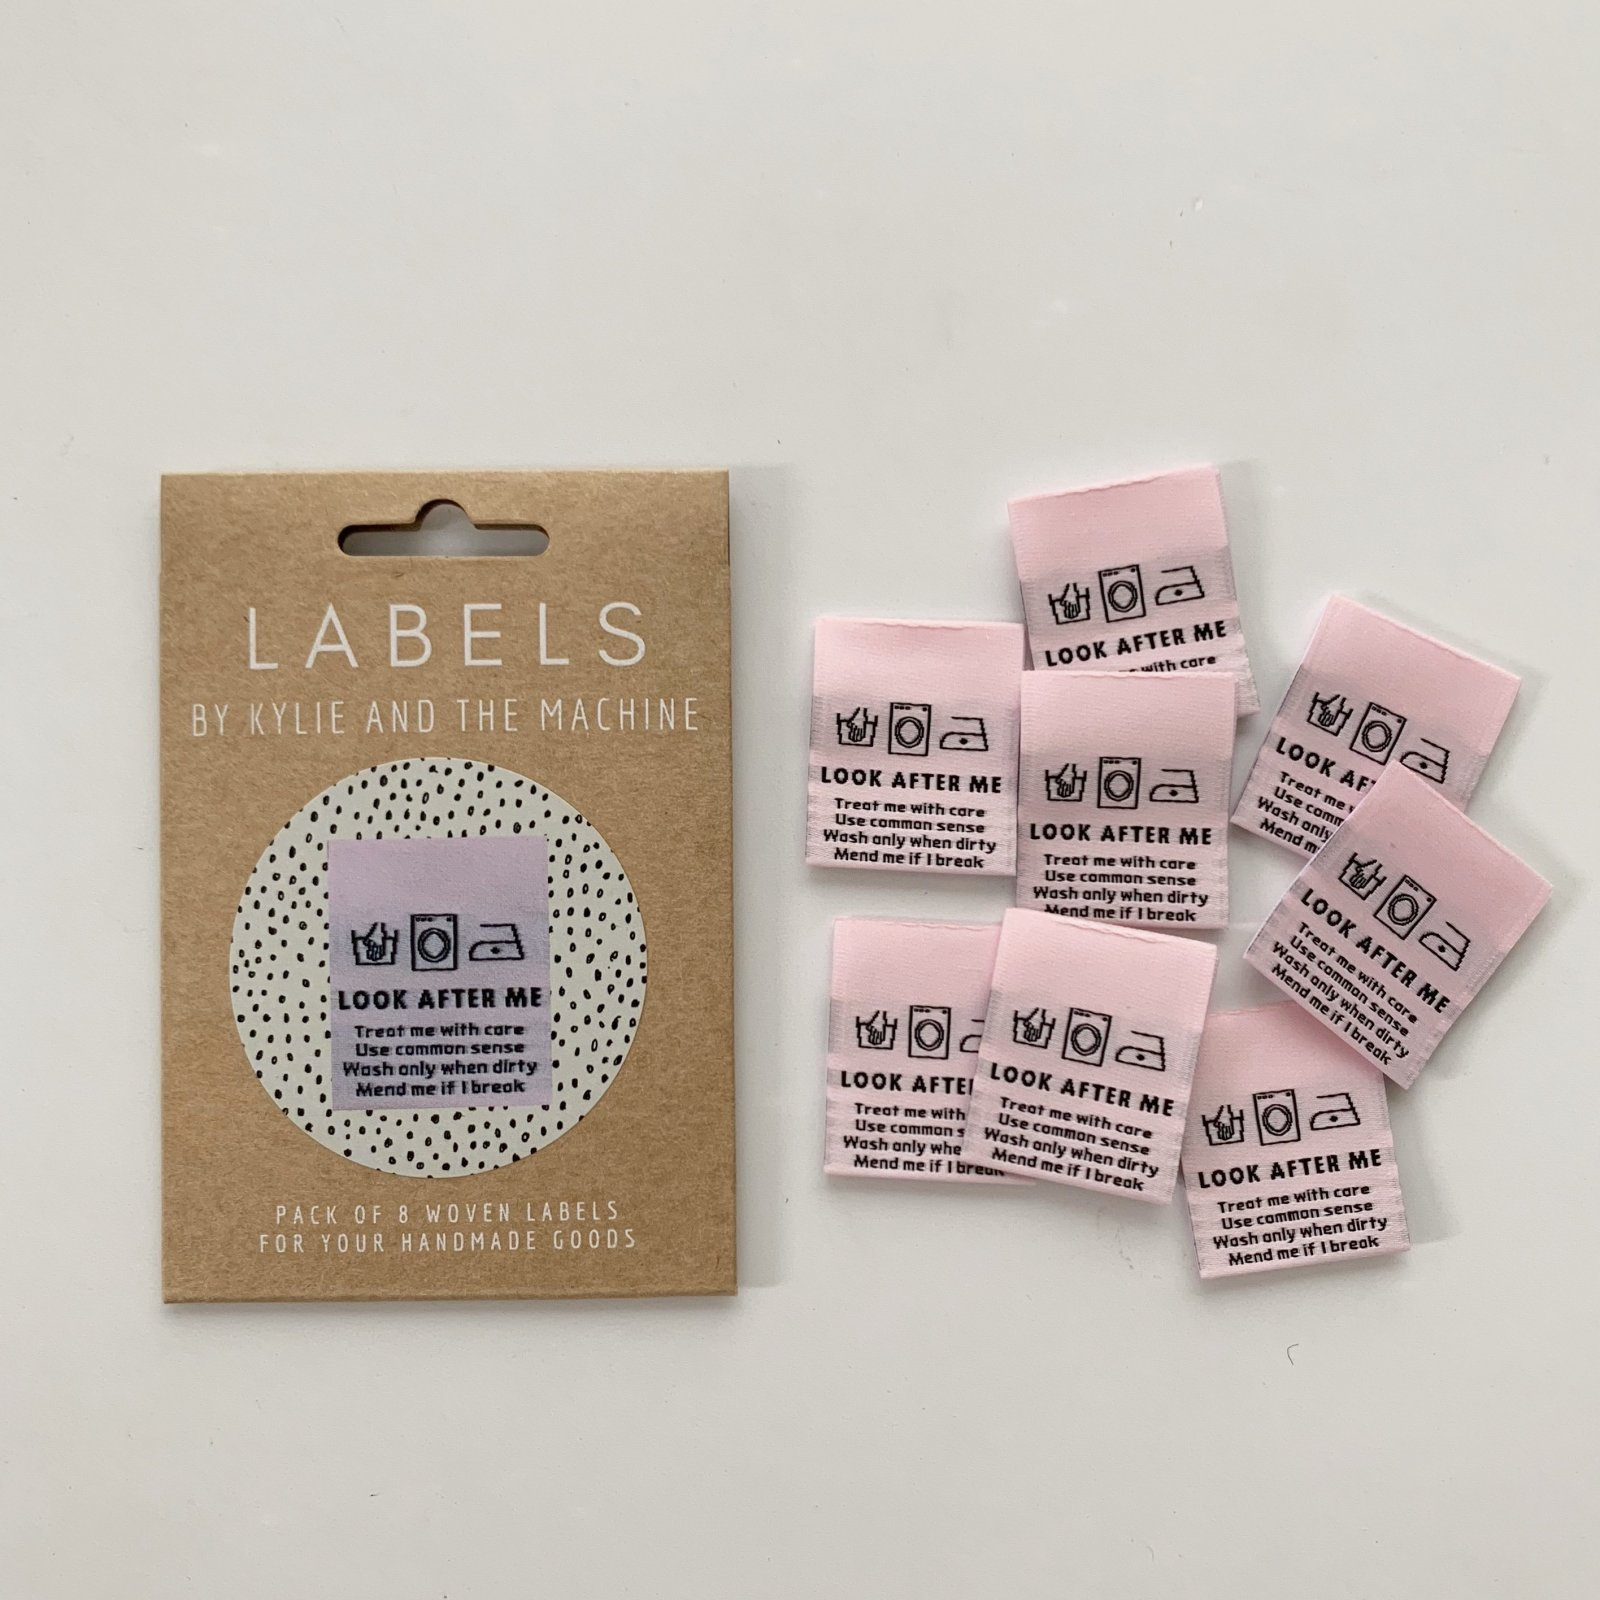 LOOK AFTER ME Woven Sewing Labels by Kylie and the Machine